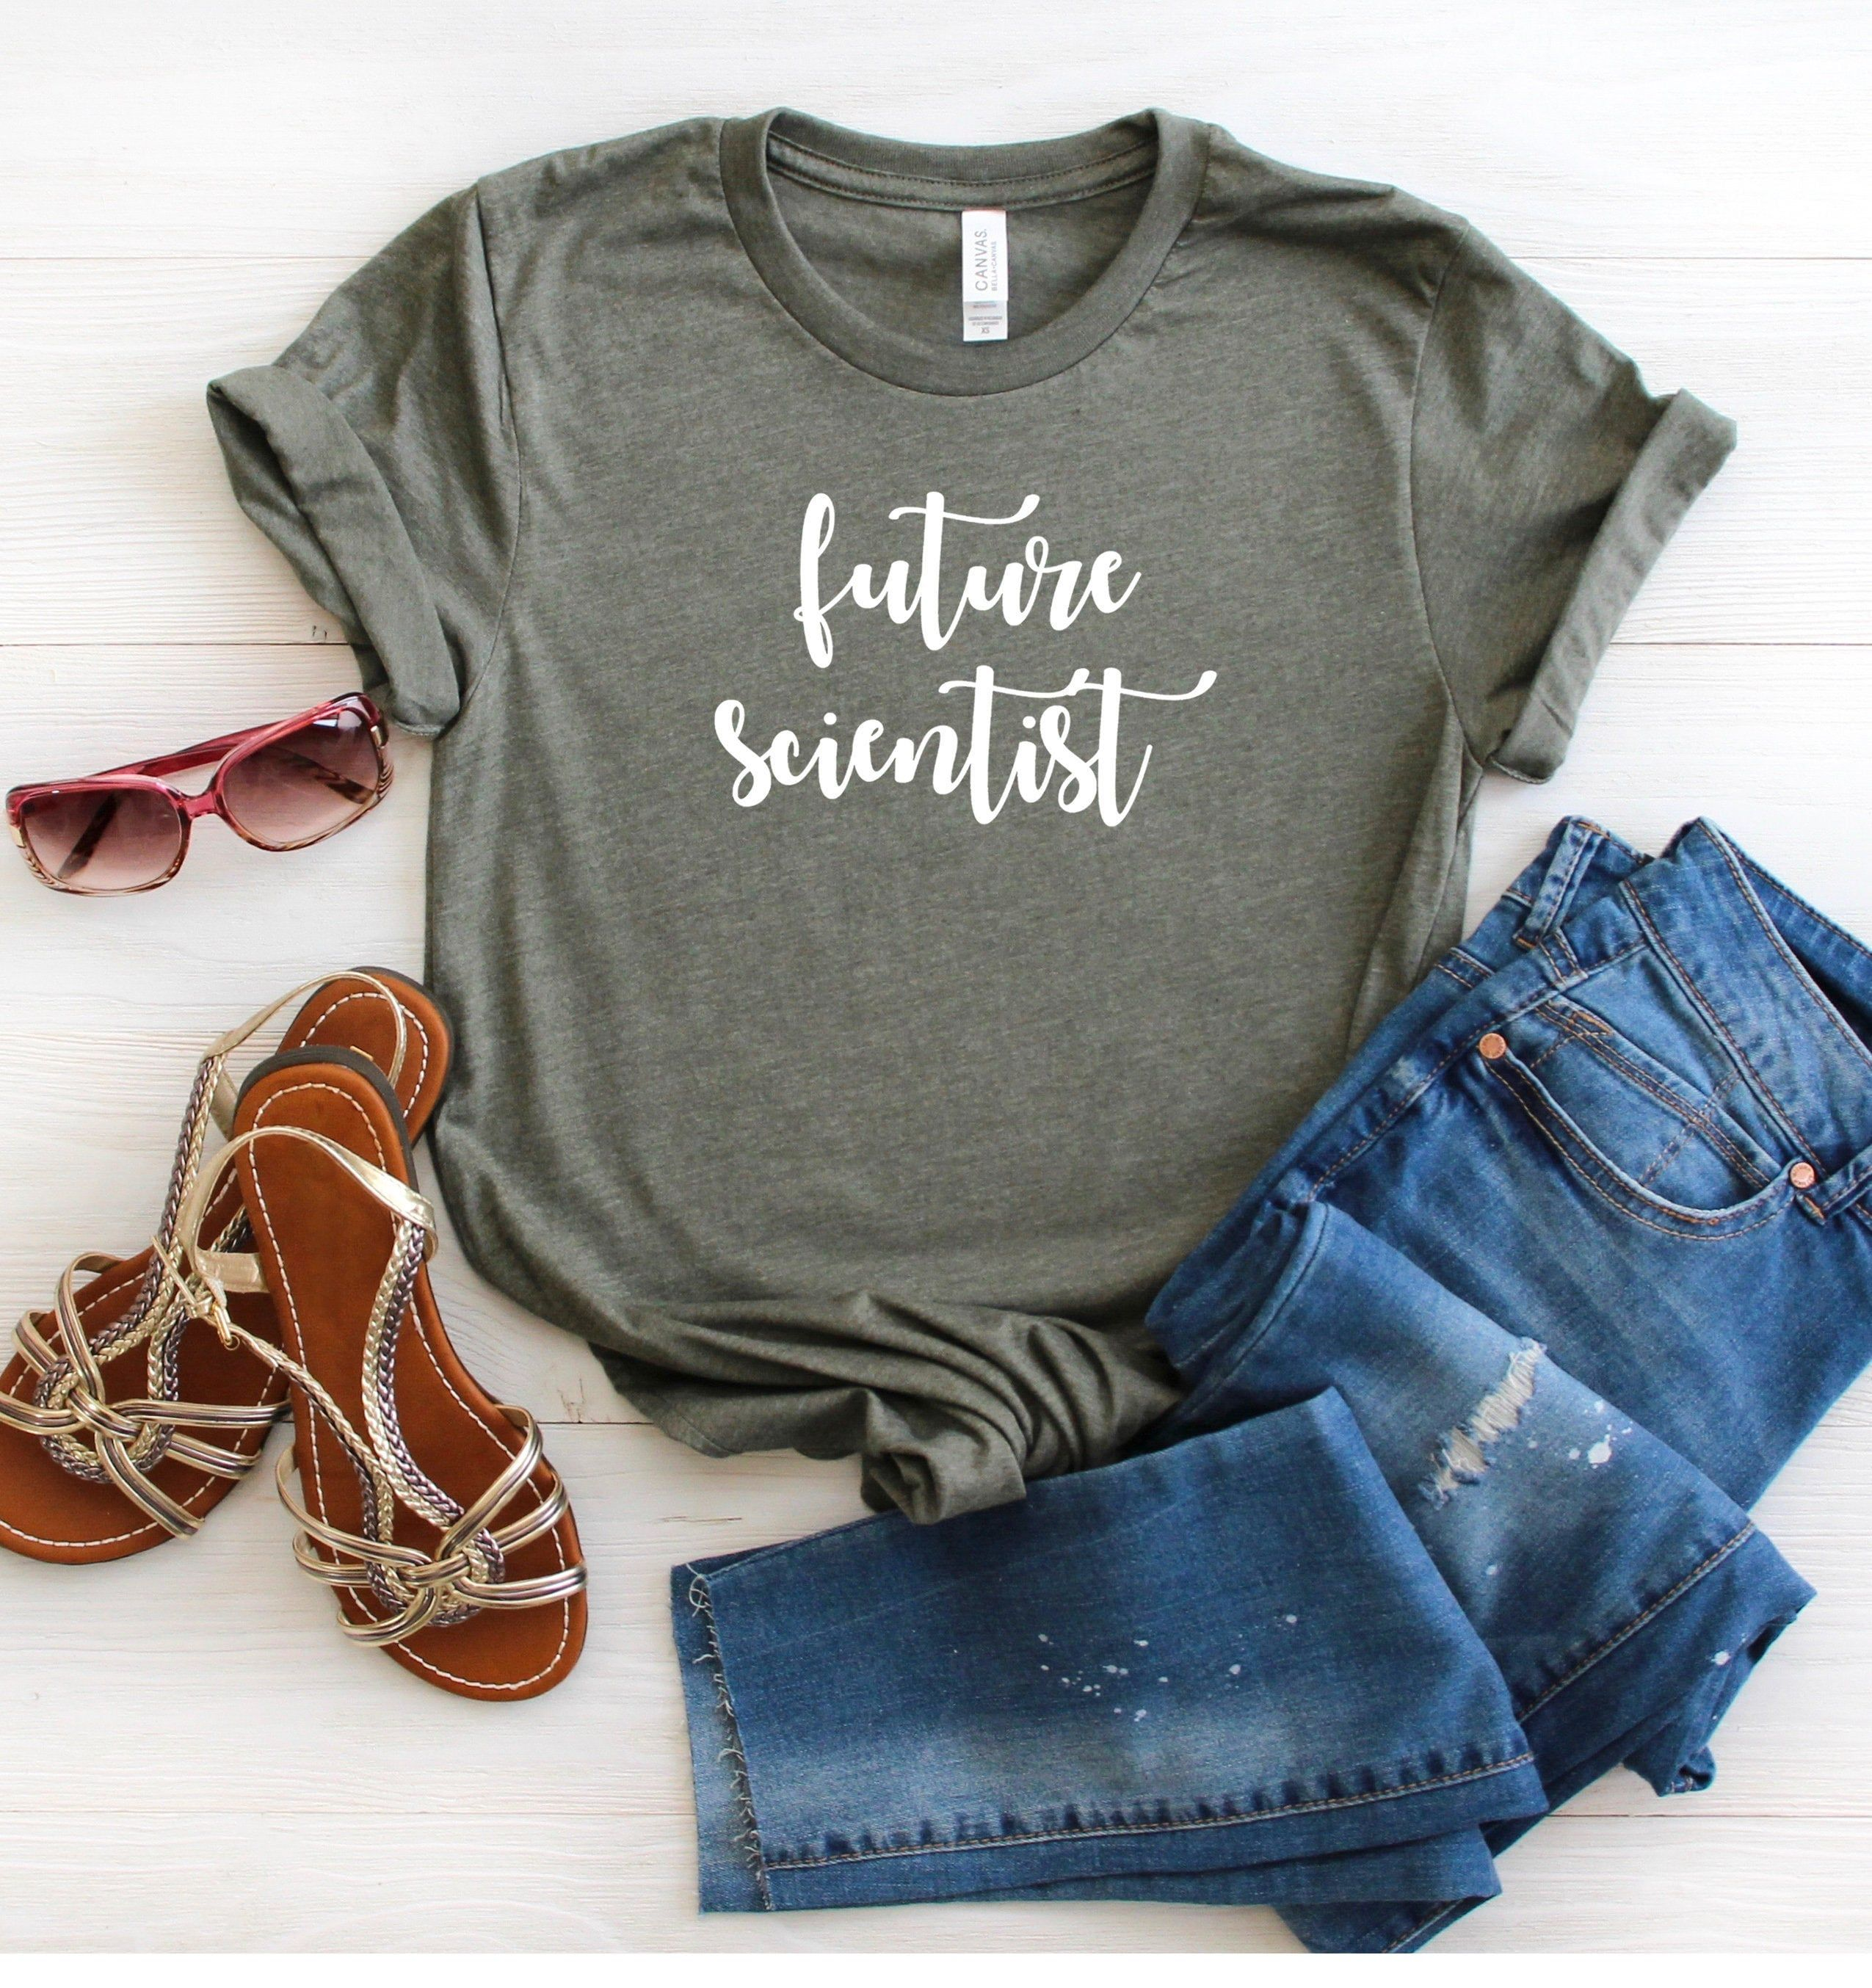 Future Scientist Shirt Love Science Shirt Love Math Shirt I'm Smart Tee Graphic Tee Funny Shirt Mom TShirt Cute Shirt ◾️ Bella + Canvas T Shirt - Soft Tee ◾️ Womens/Mens Unisex T Shirt ◾️ The T Shirt is dual-blend exceptionally soft short sleeve, crew neck tee. ◾️ 52% combed and ringspun cotton & 48% polyester with a more modern, unisex fit. ◾️ Athletic Heather Gray is 90% combed and ringspun cotton & 10% polyester. ◾️ {Sleeves rolled up in picture} Please refer to size guide. These are